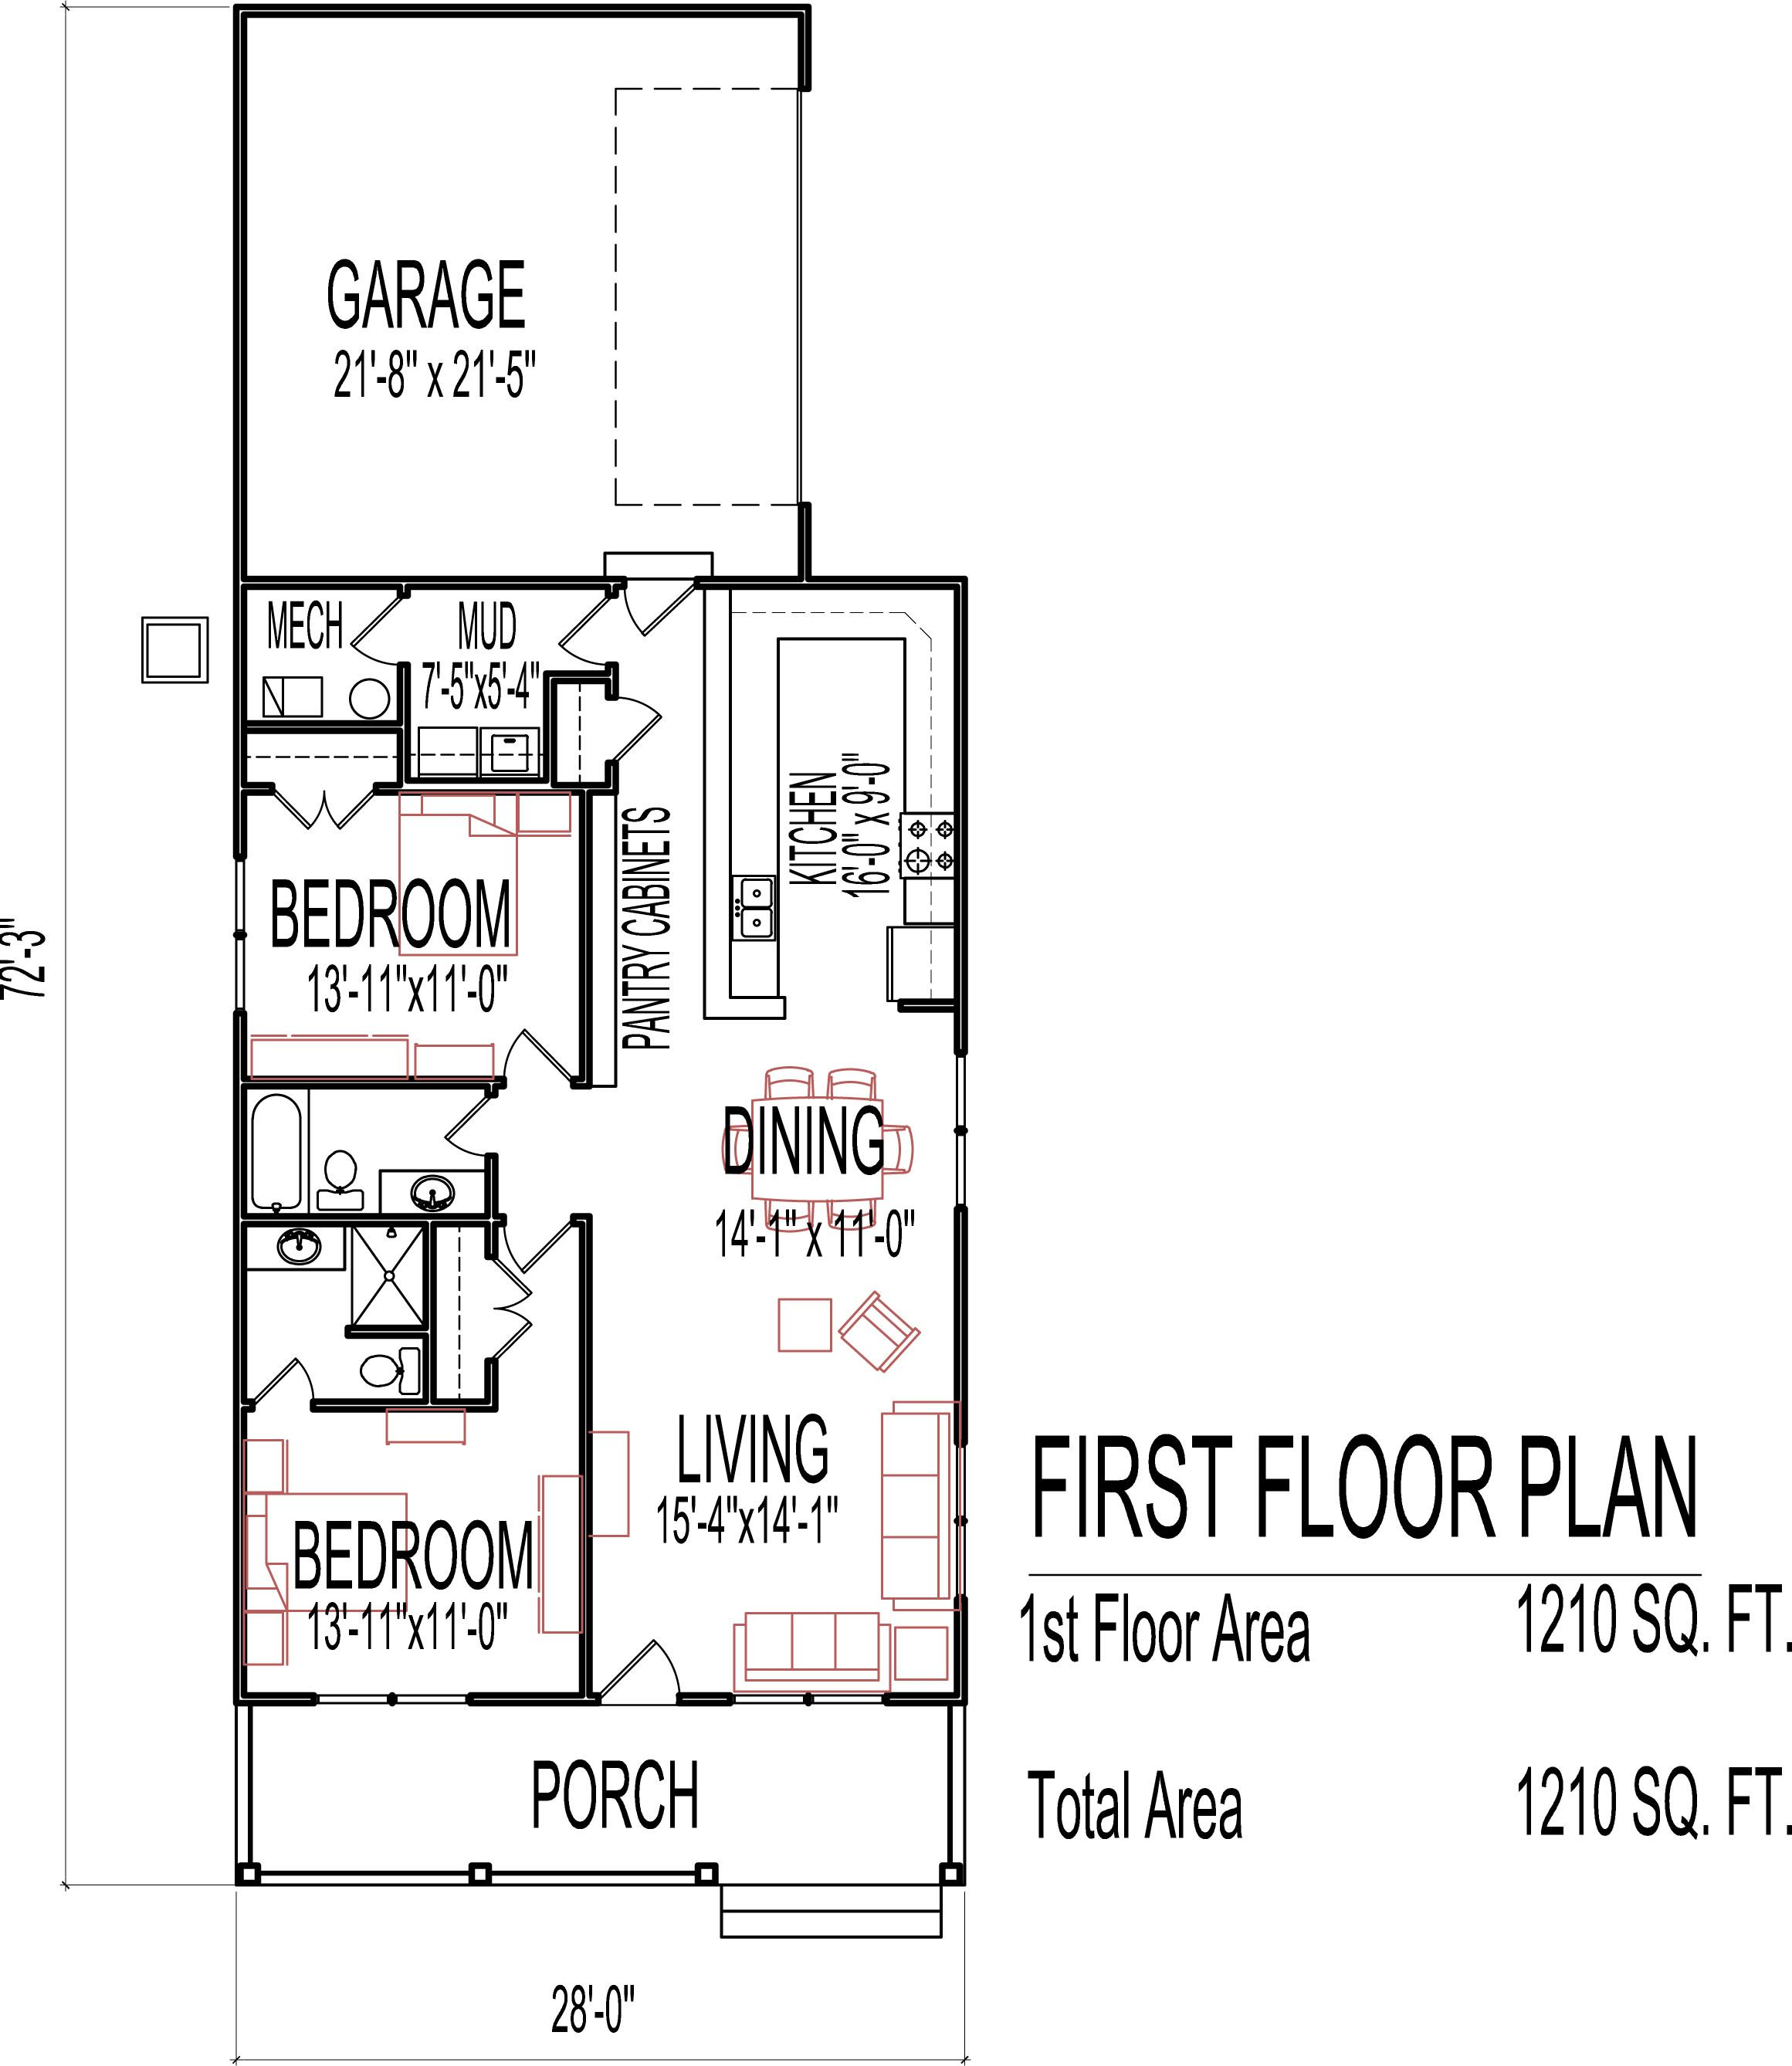 Small low cost economical 2 bedroom 2 bath 1200 sq ft for Low cost small house plans